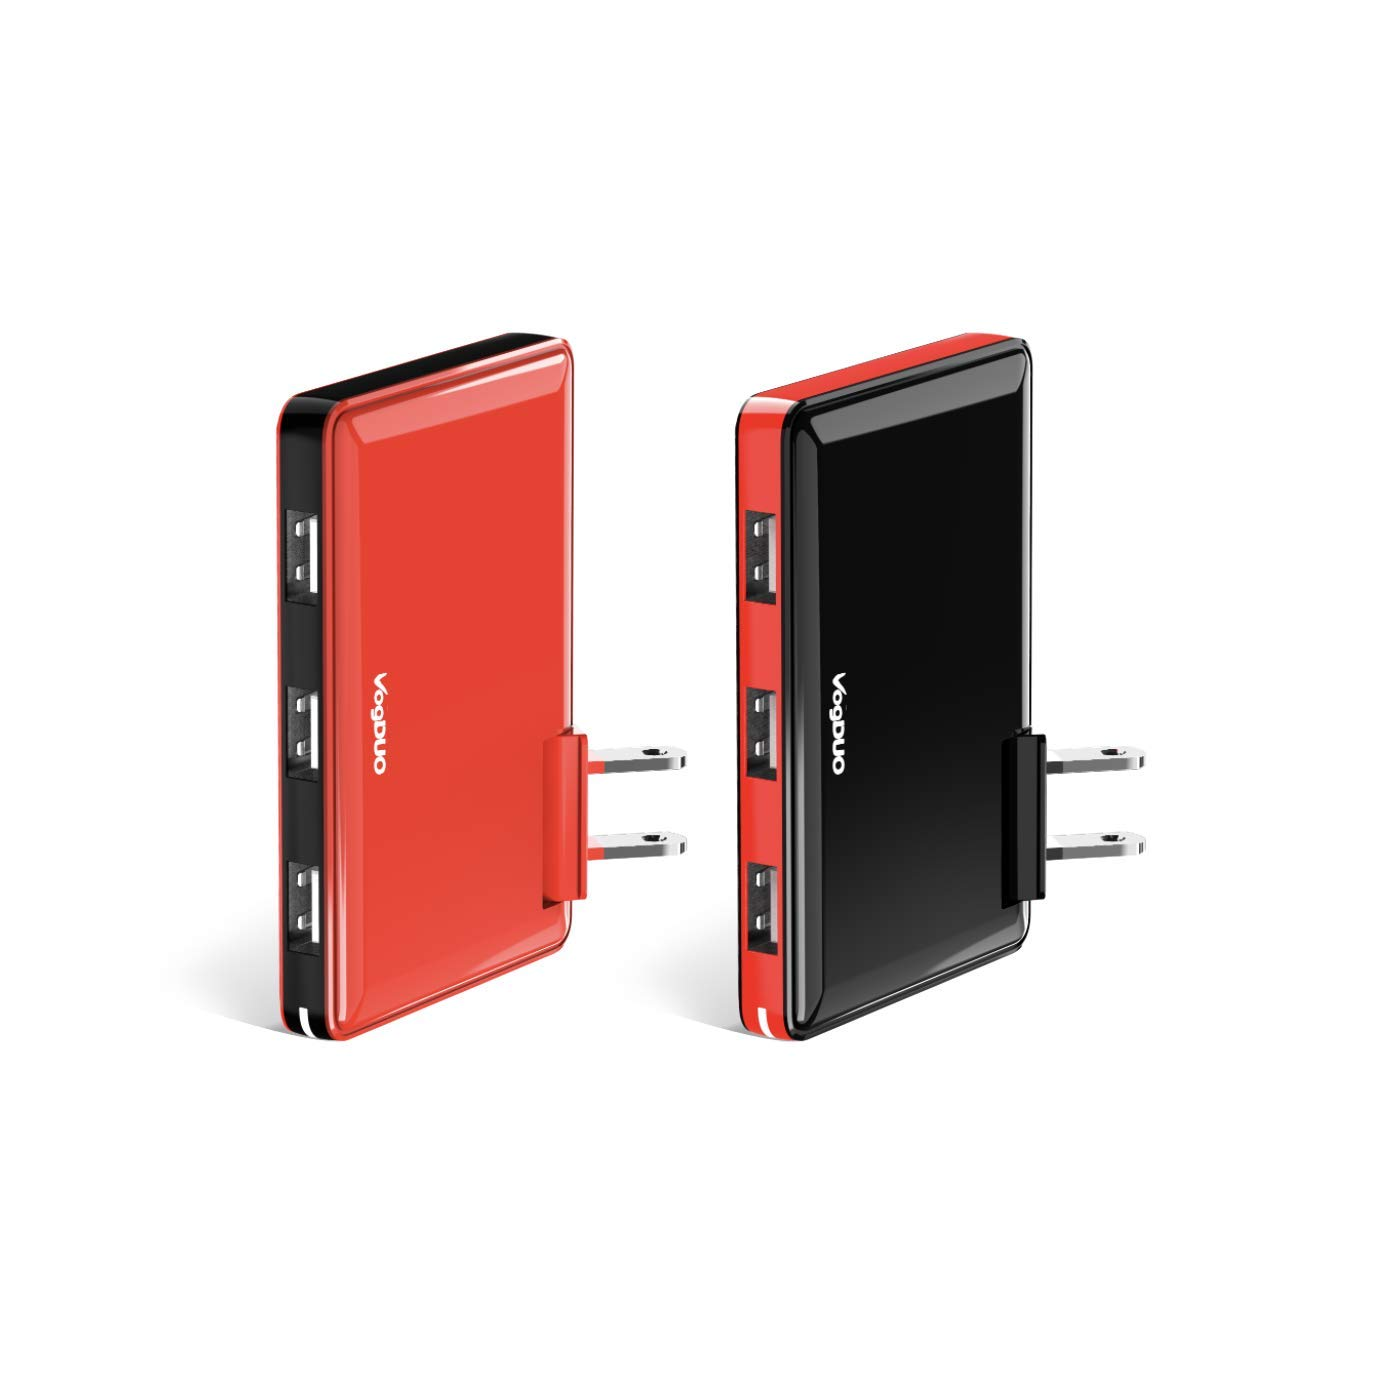 Charger Pro, 2-Pack Premium 3 Port USB Wall Charger, 30W 5V/6A, Slim Design, Foldable Plug for Multiple Apple iPhone X Xs Xr Xs Max, iPad, Android, Samsung Note 9, Black & Red (Gift Box)